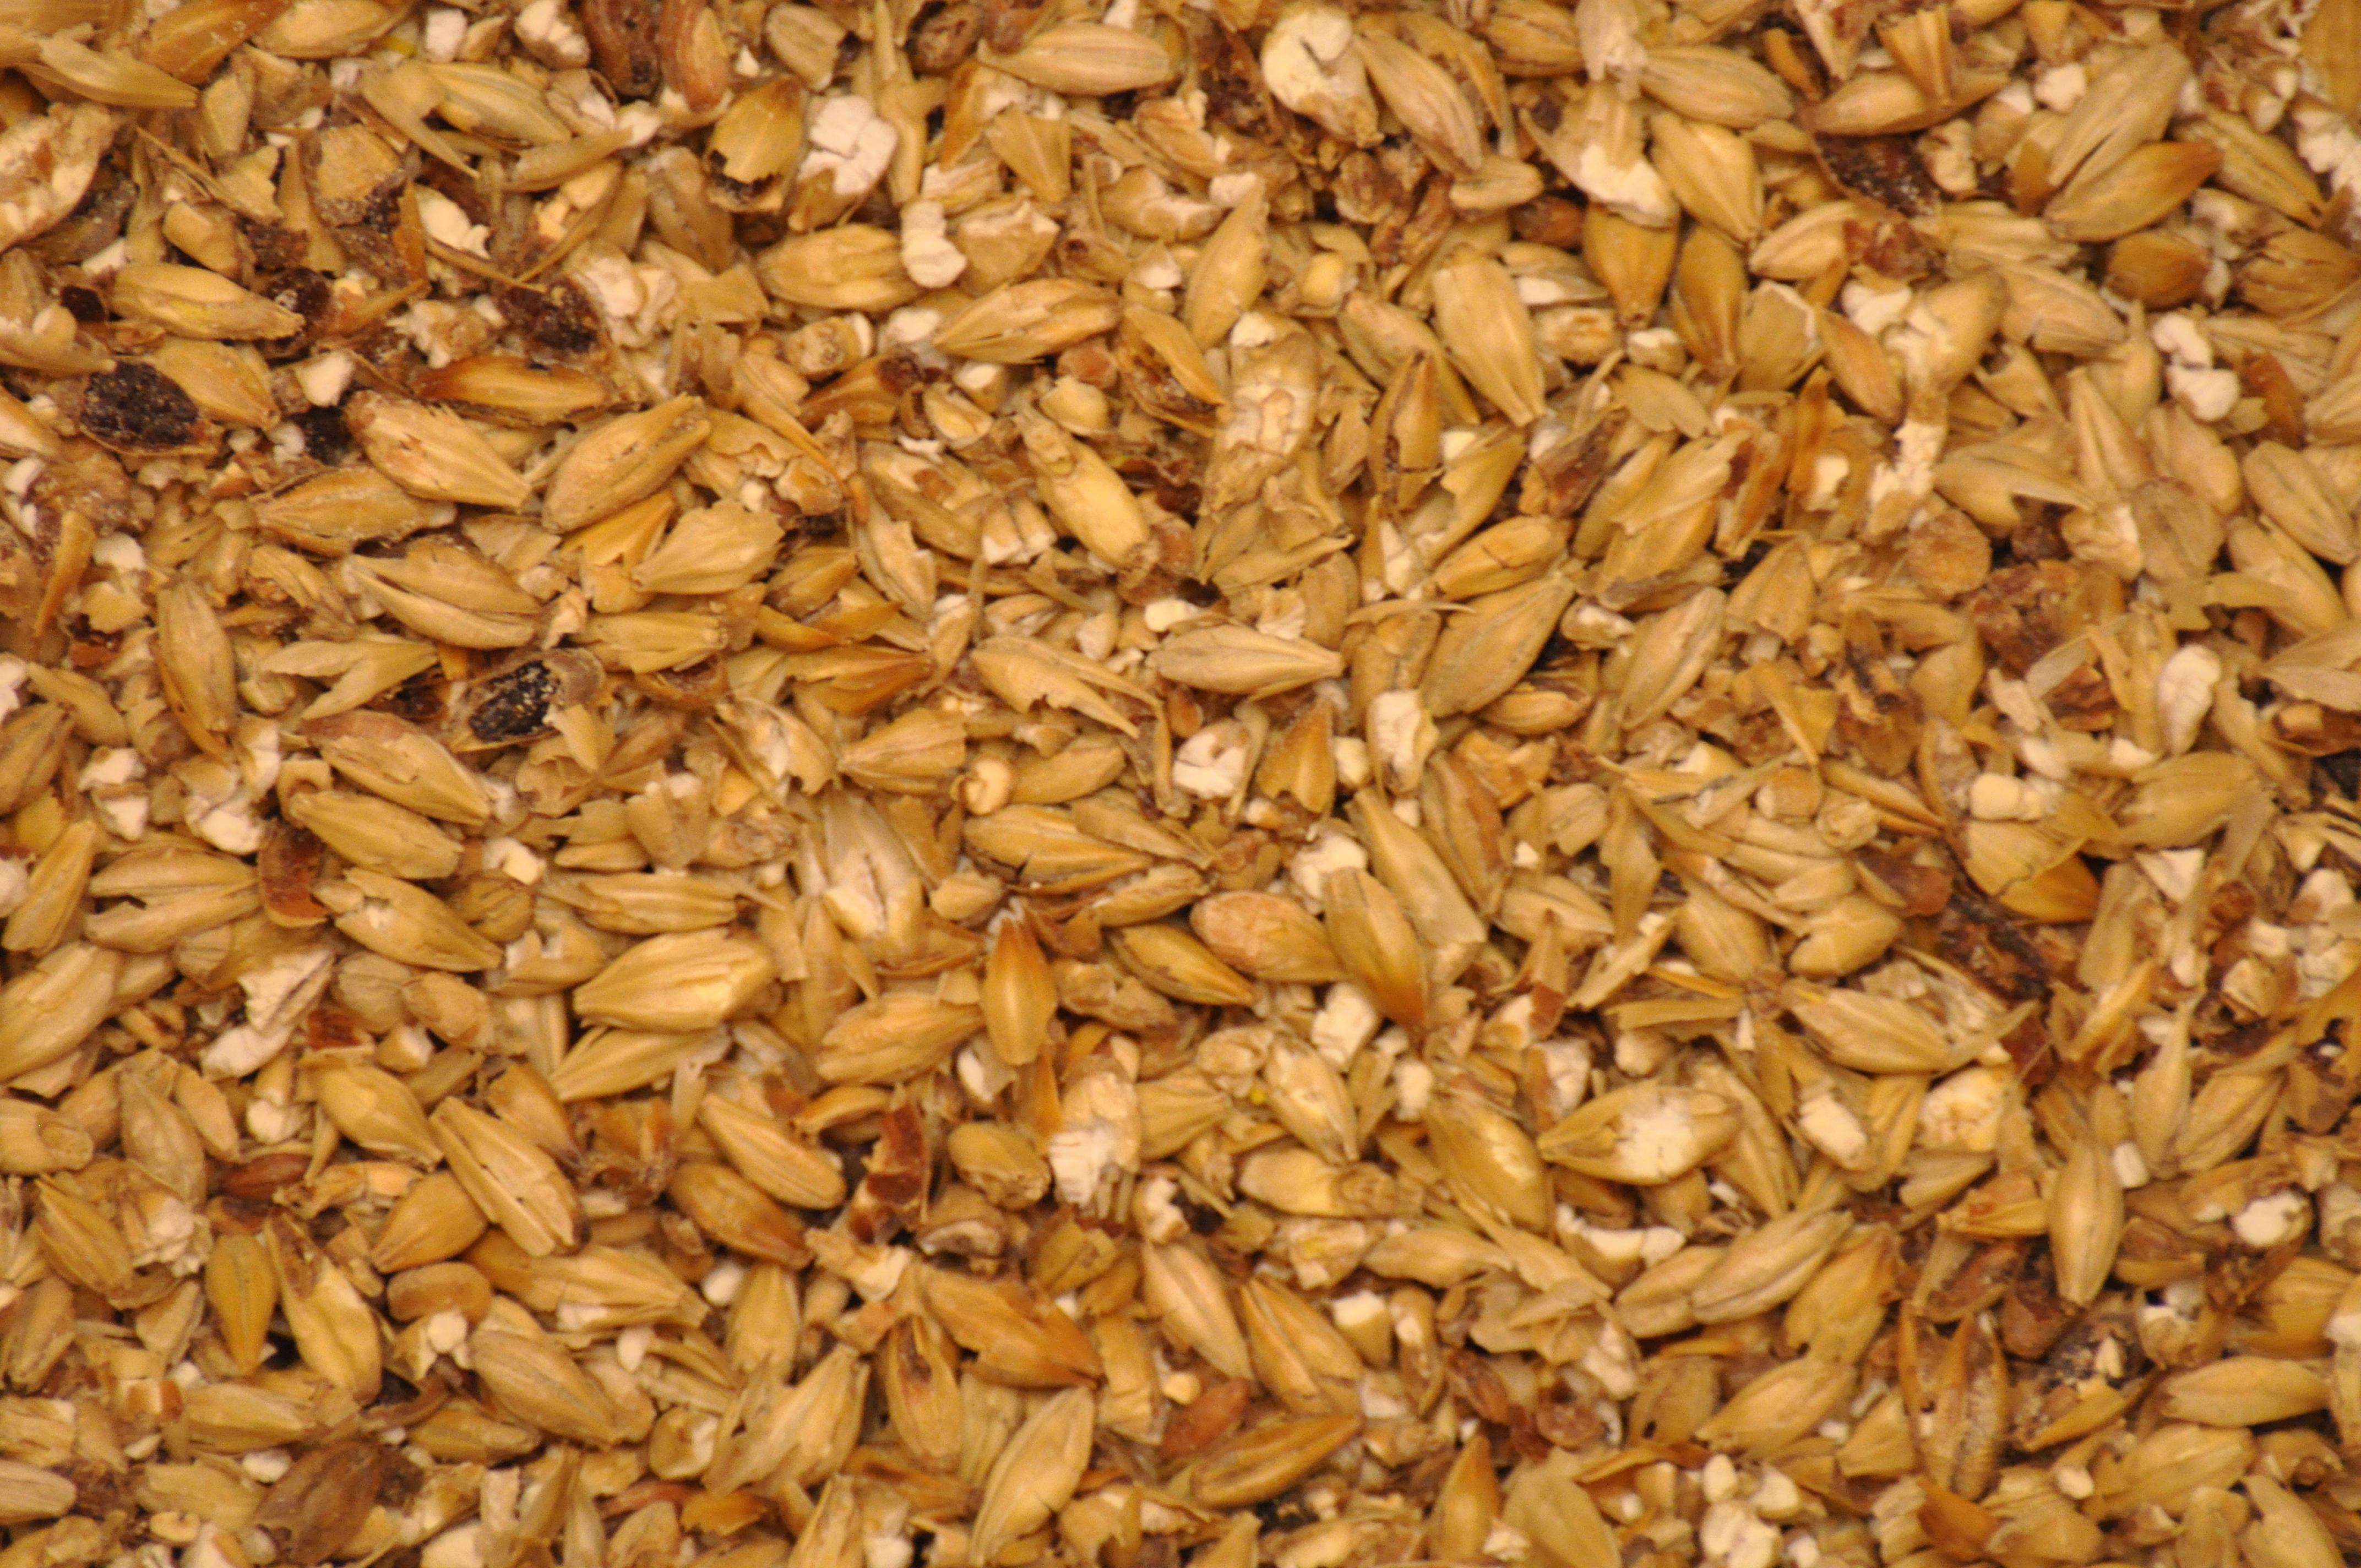 milled_malted_barley